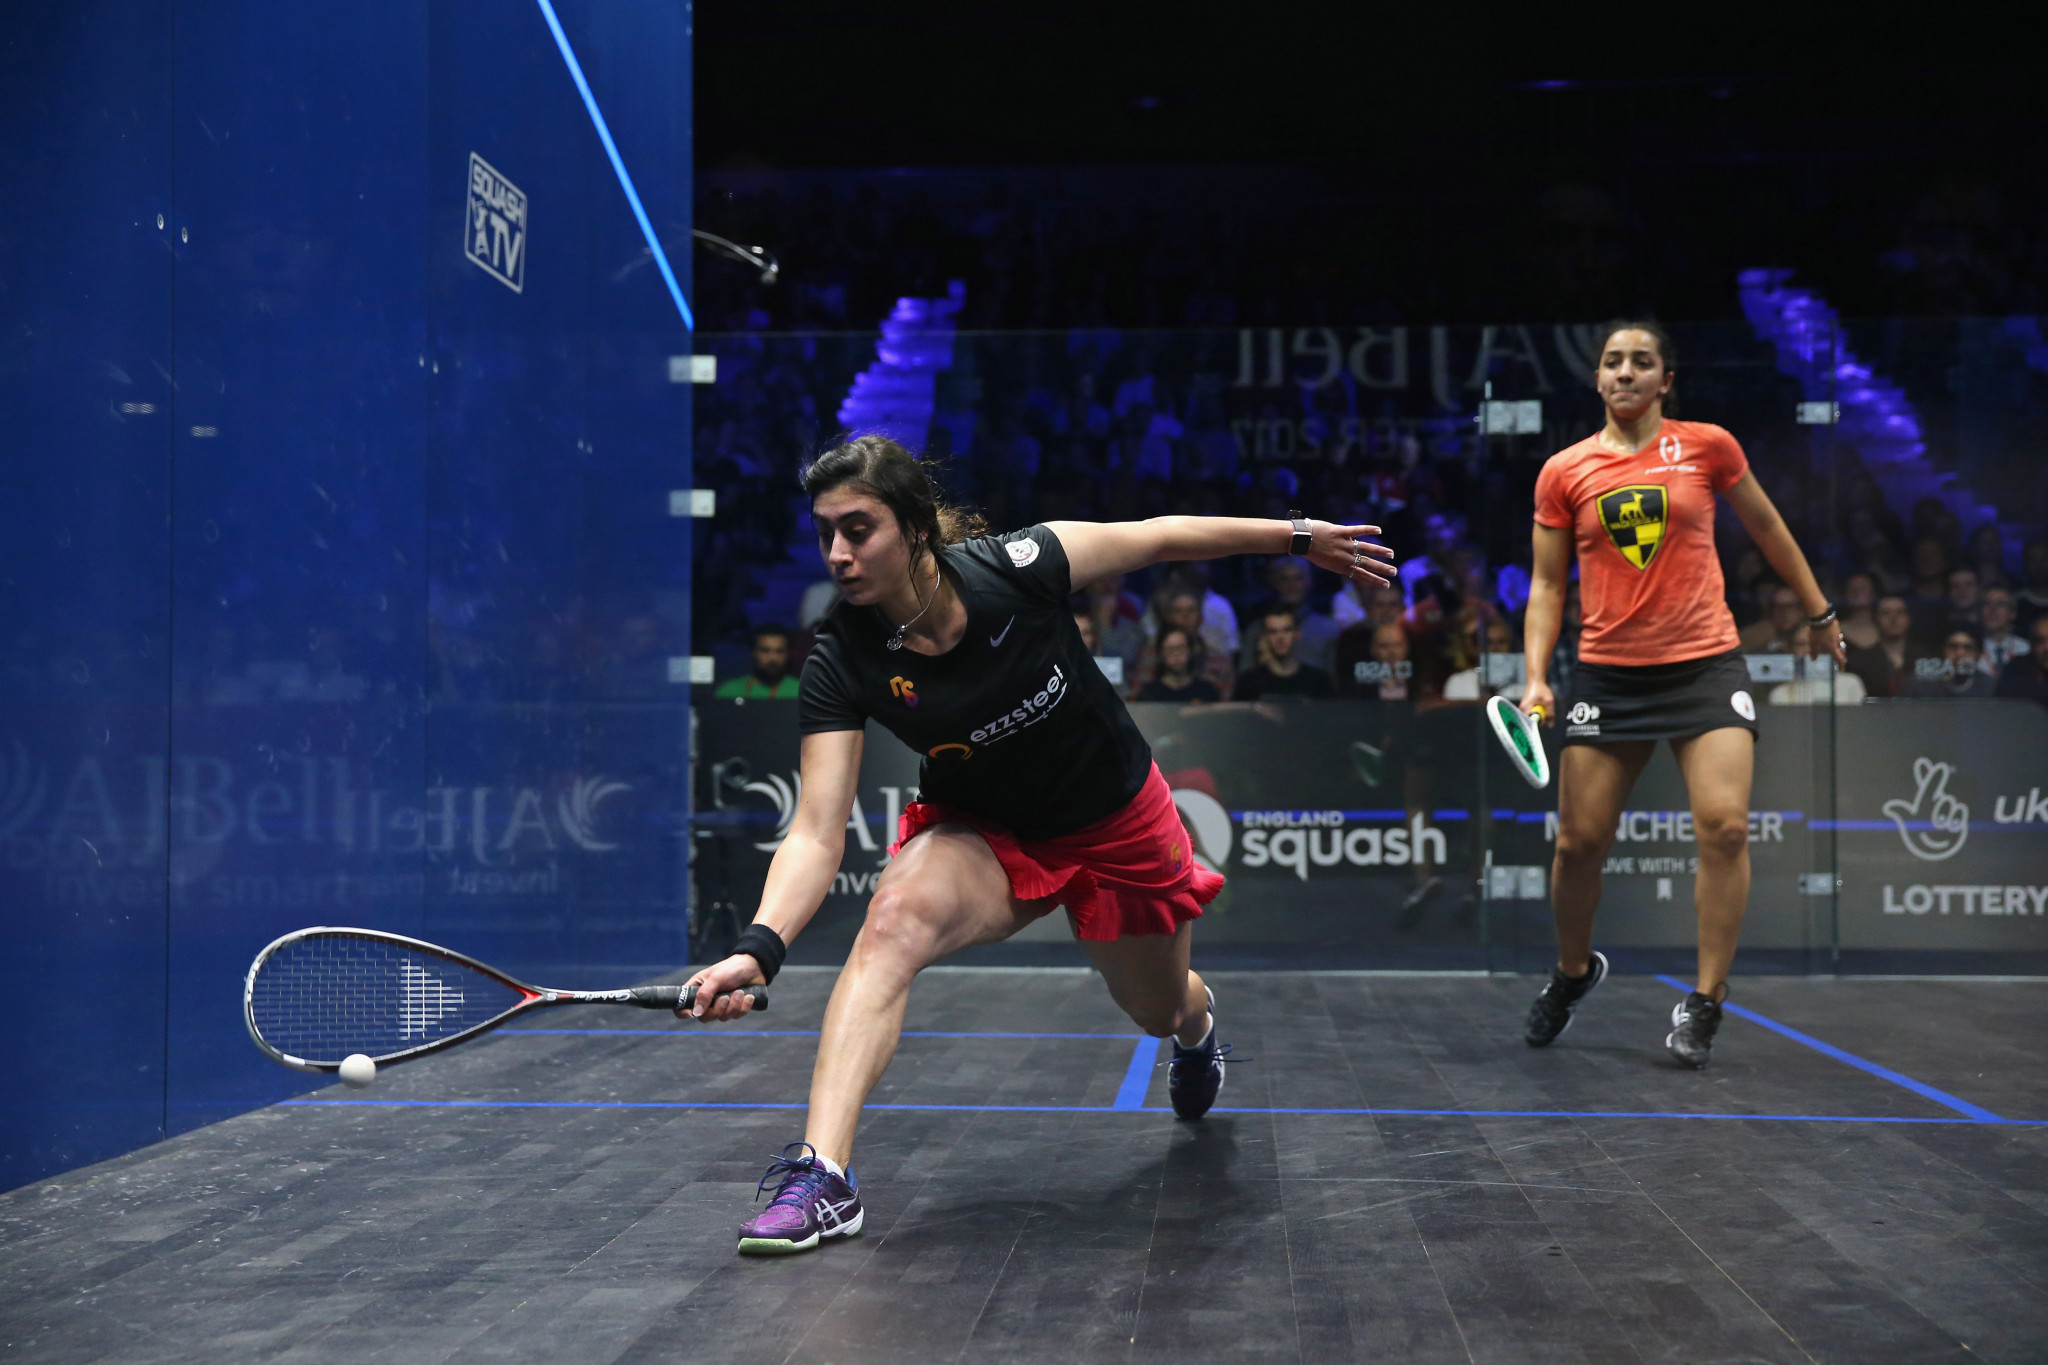 Nour El Sherbini remains the women's world number one ©Getty Images